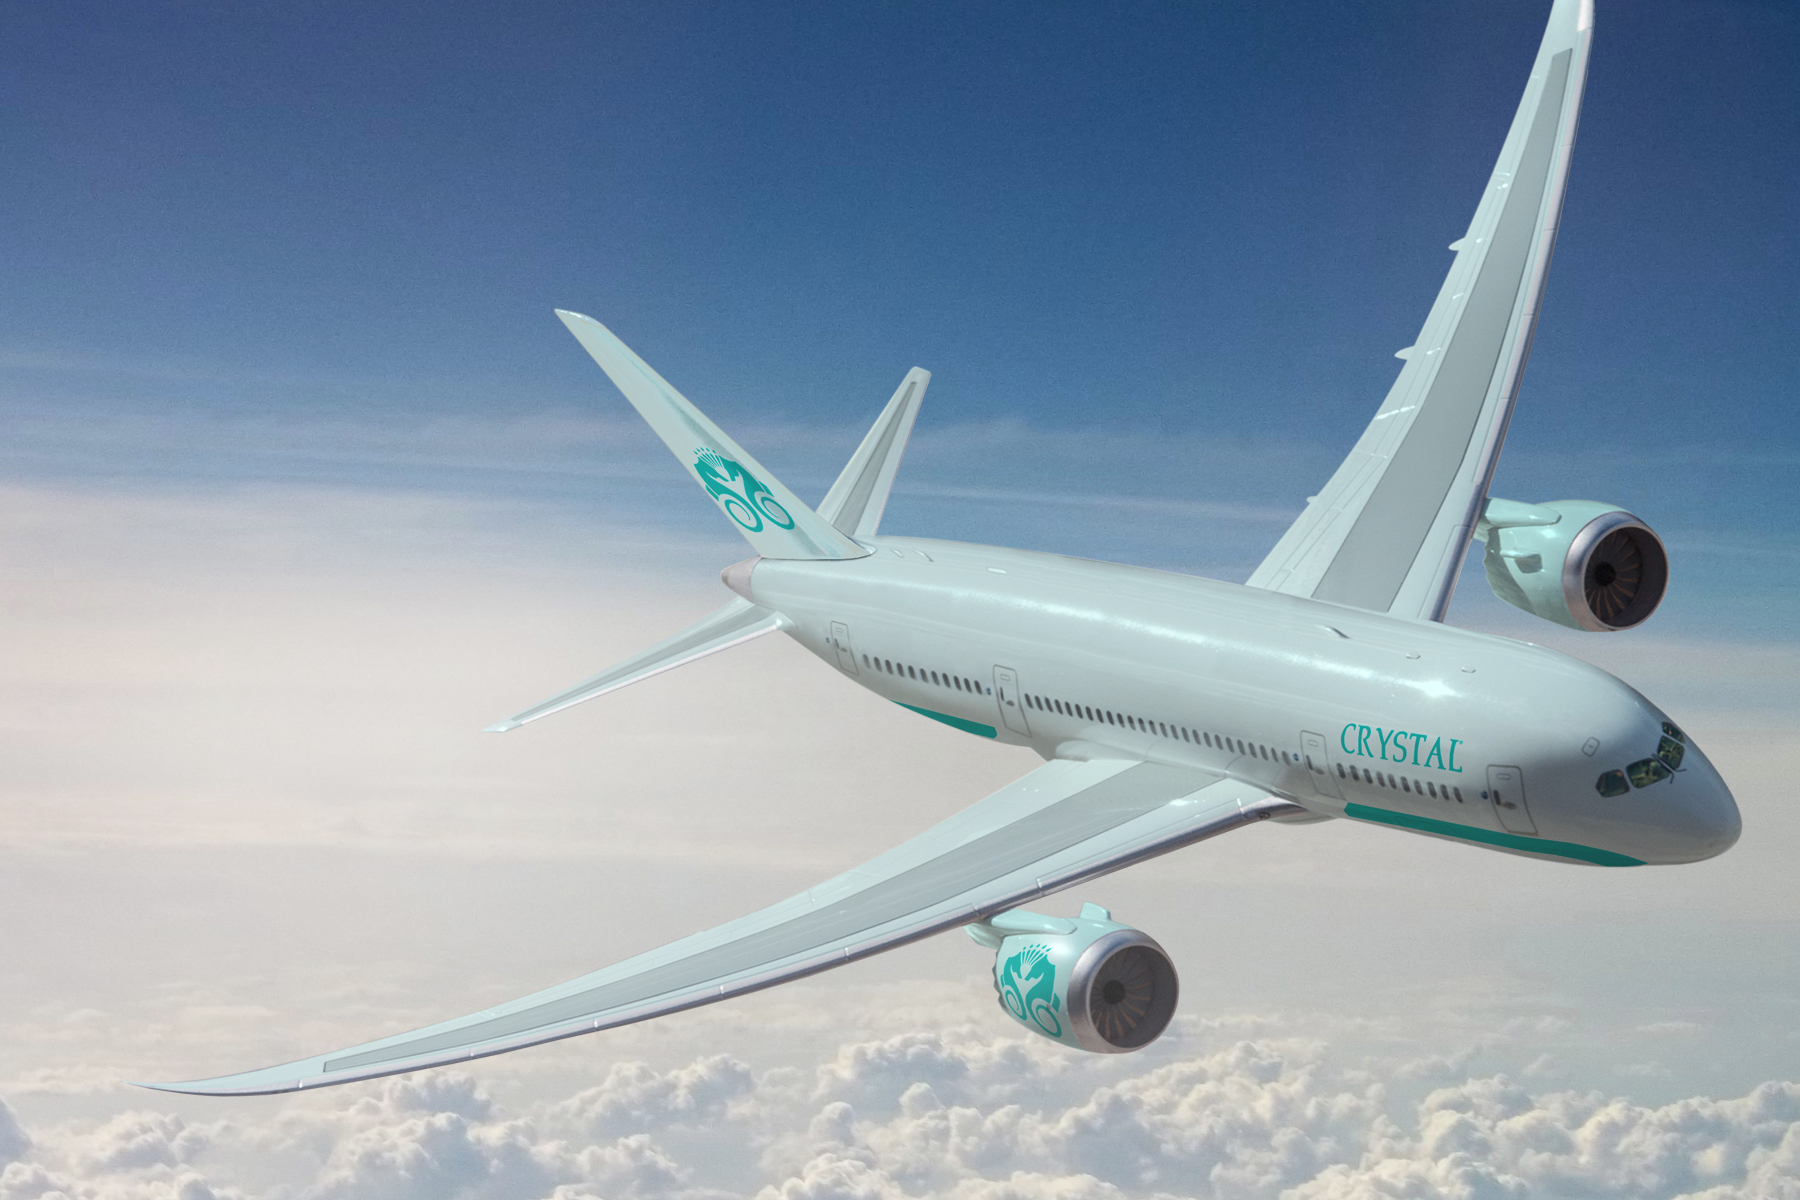 Crystal Unveil Design Details for Luxury Aircraft